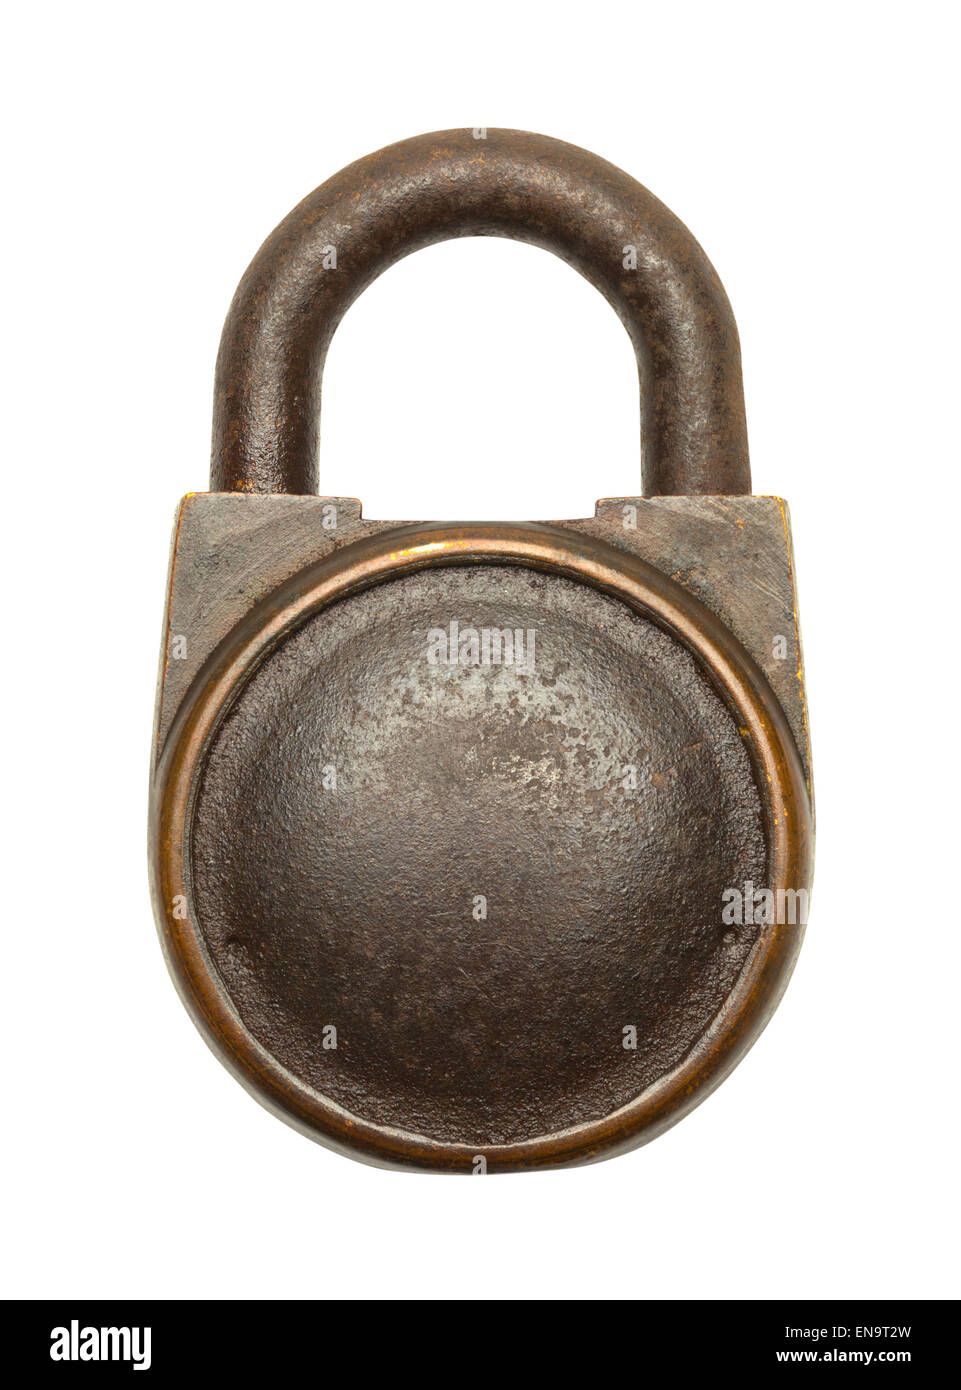 Old Brass Lock with Copy Space Isolated on White Background. - Stock Image